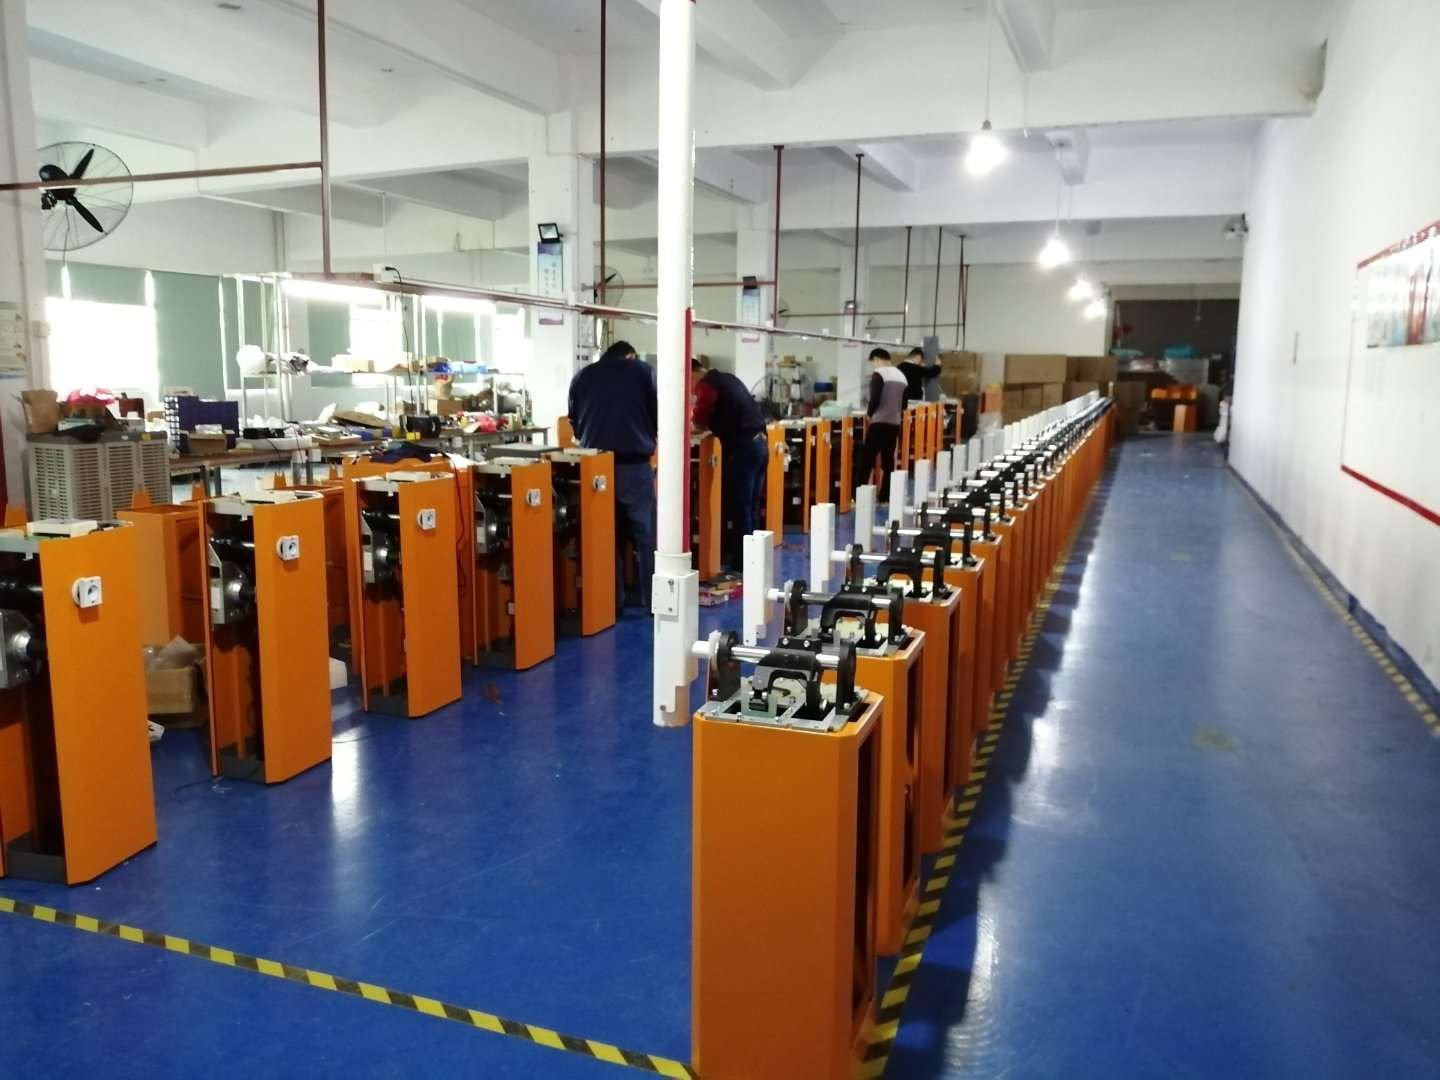 servo motor parking barrer